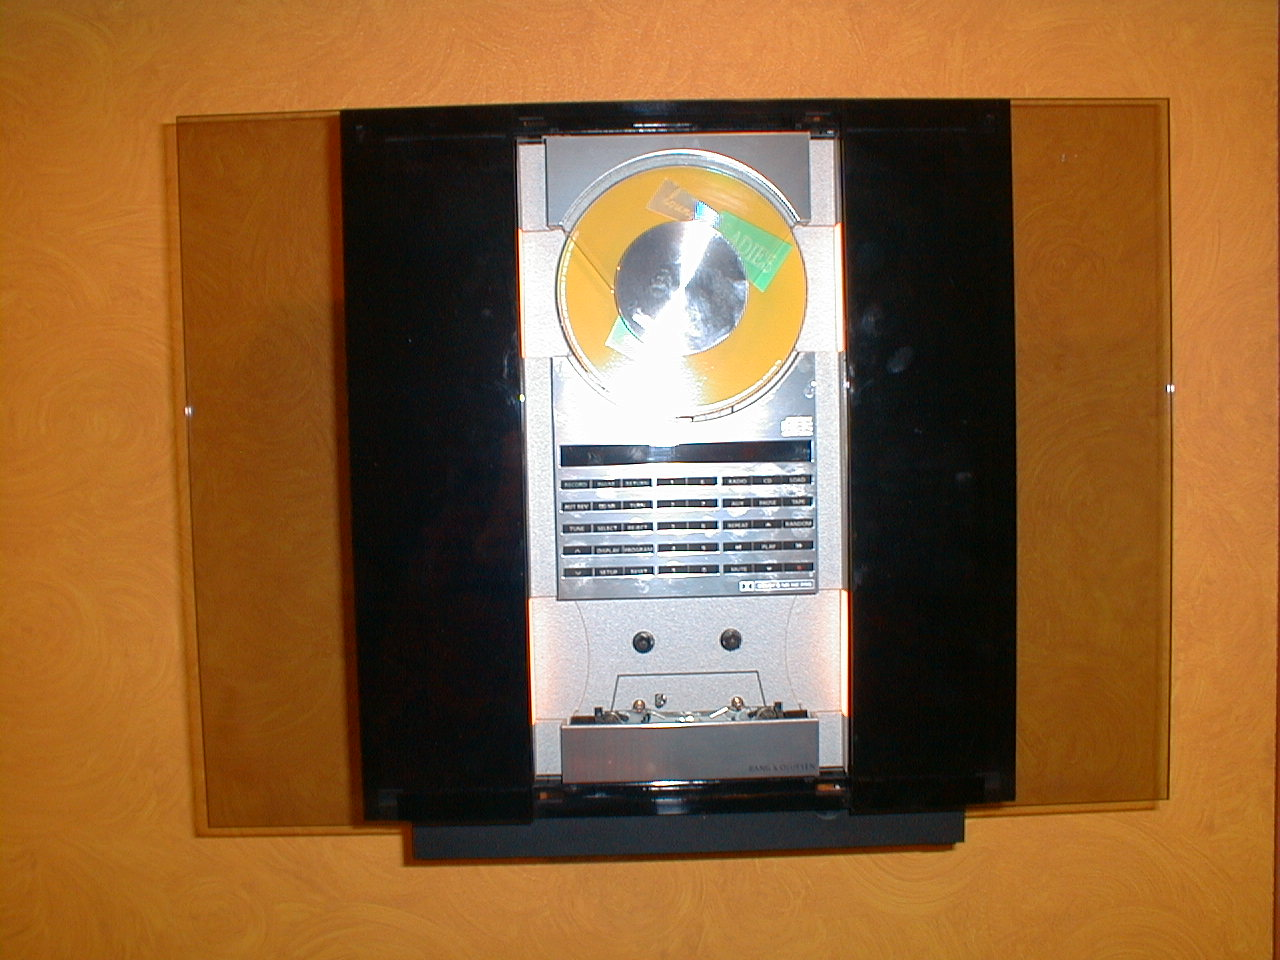 .. yet they can still be played on good sound systems like this one